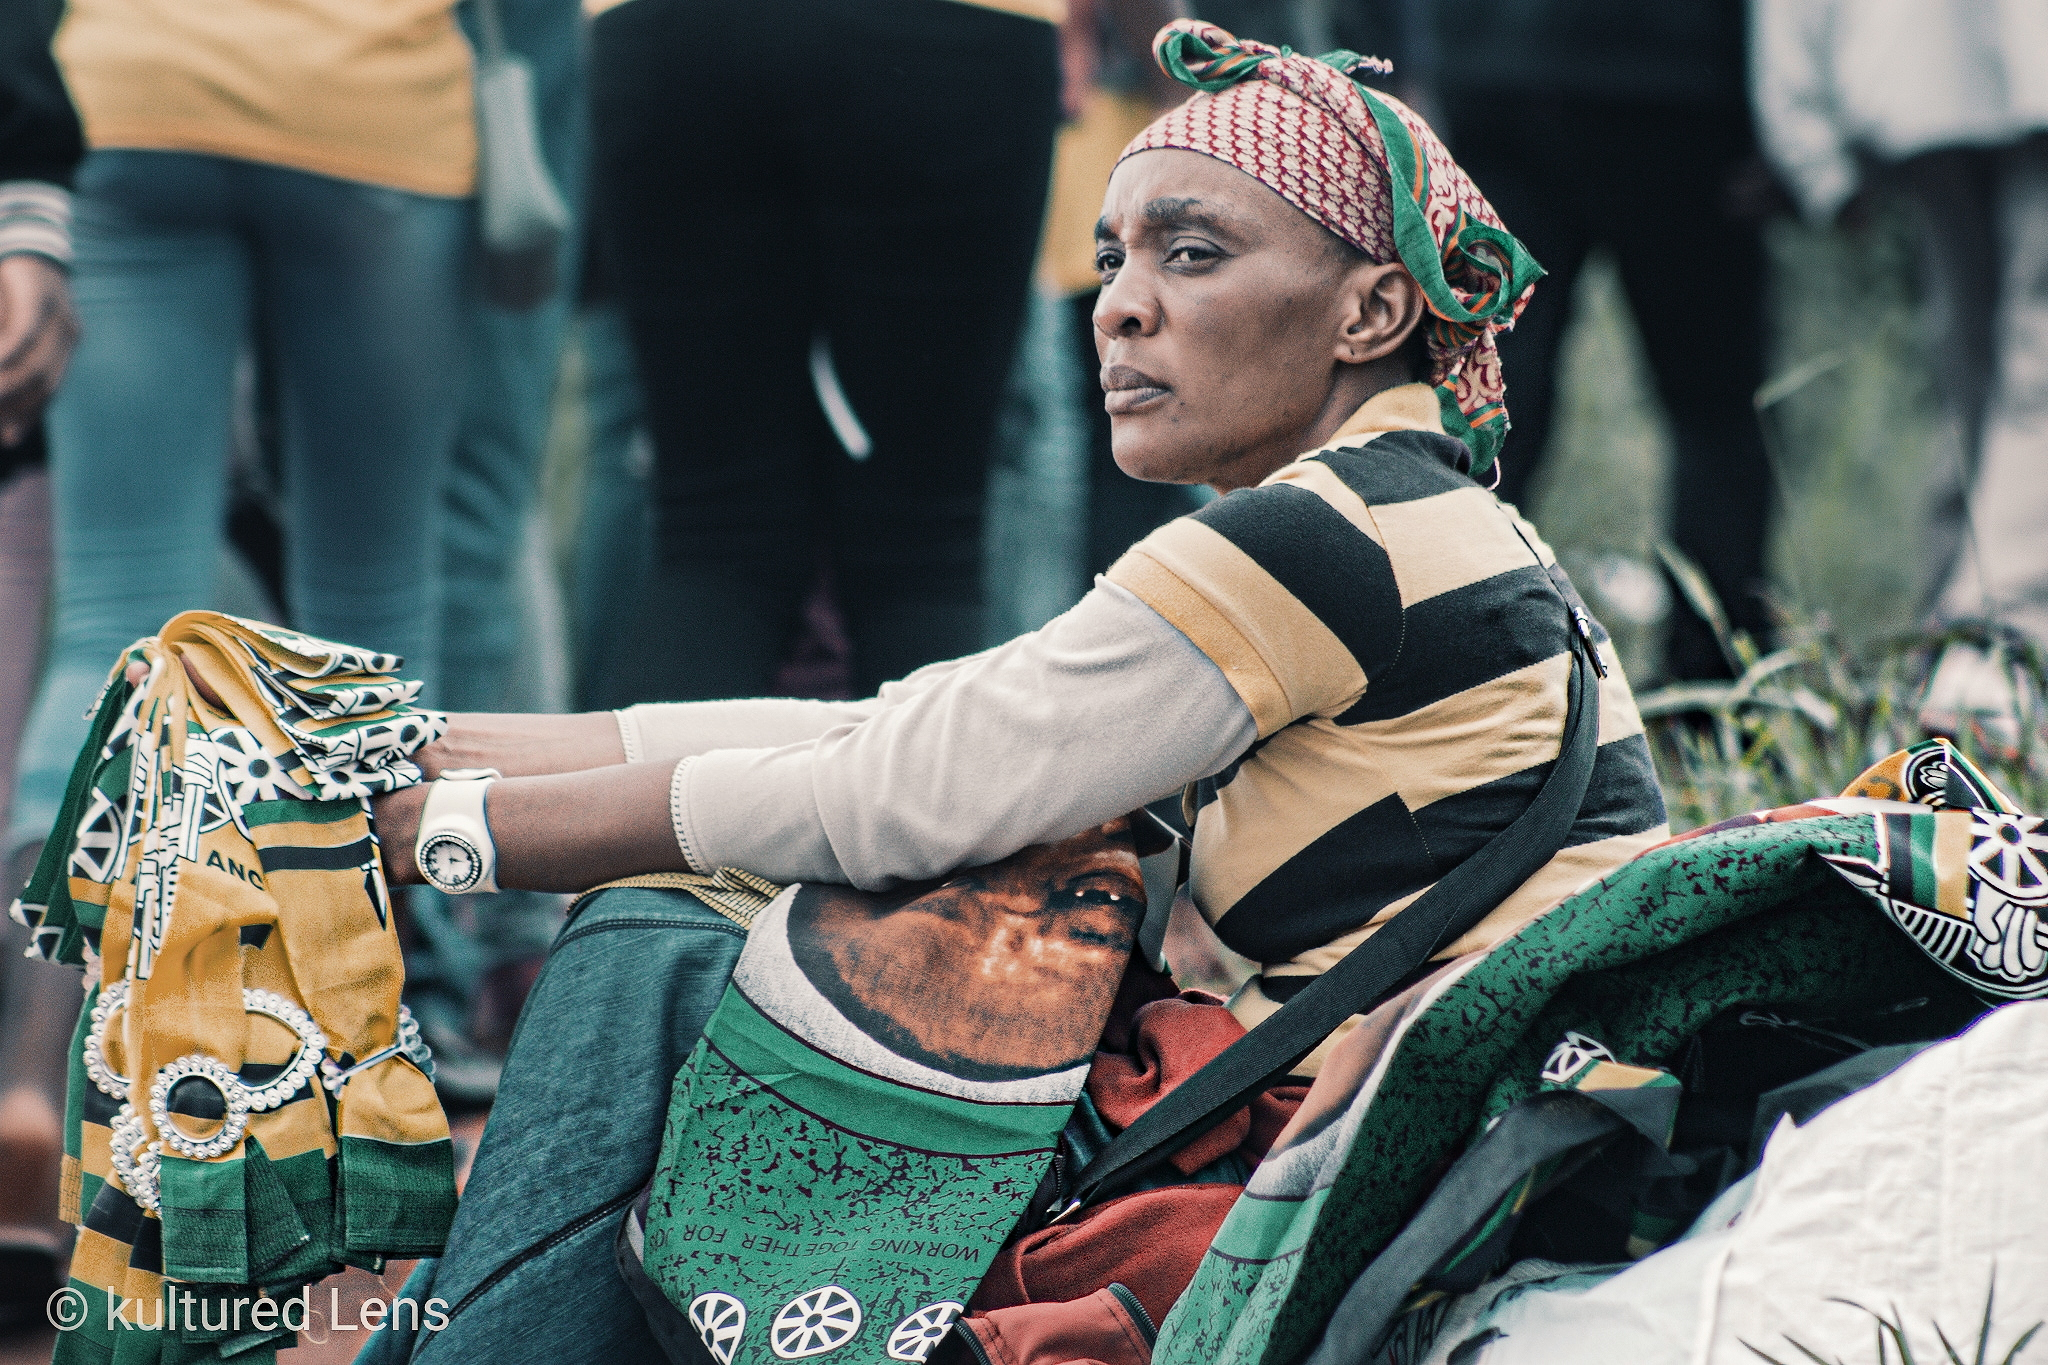 A woman sitting down selling regalia taken by Karabo Maila